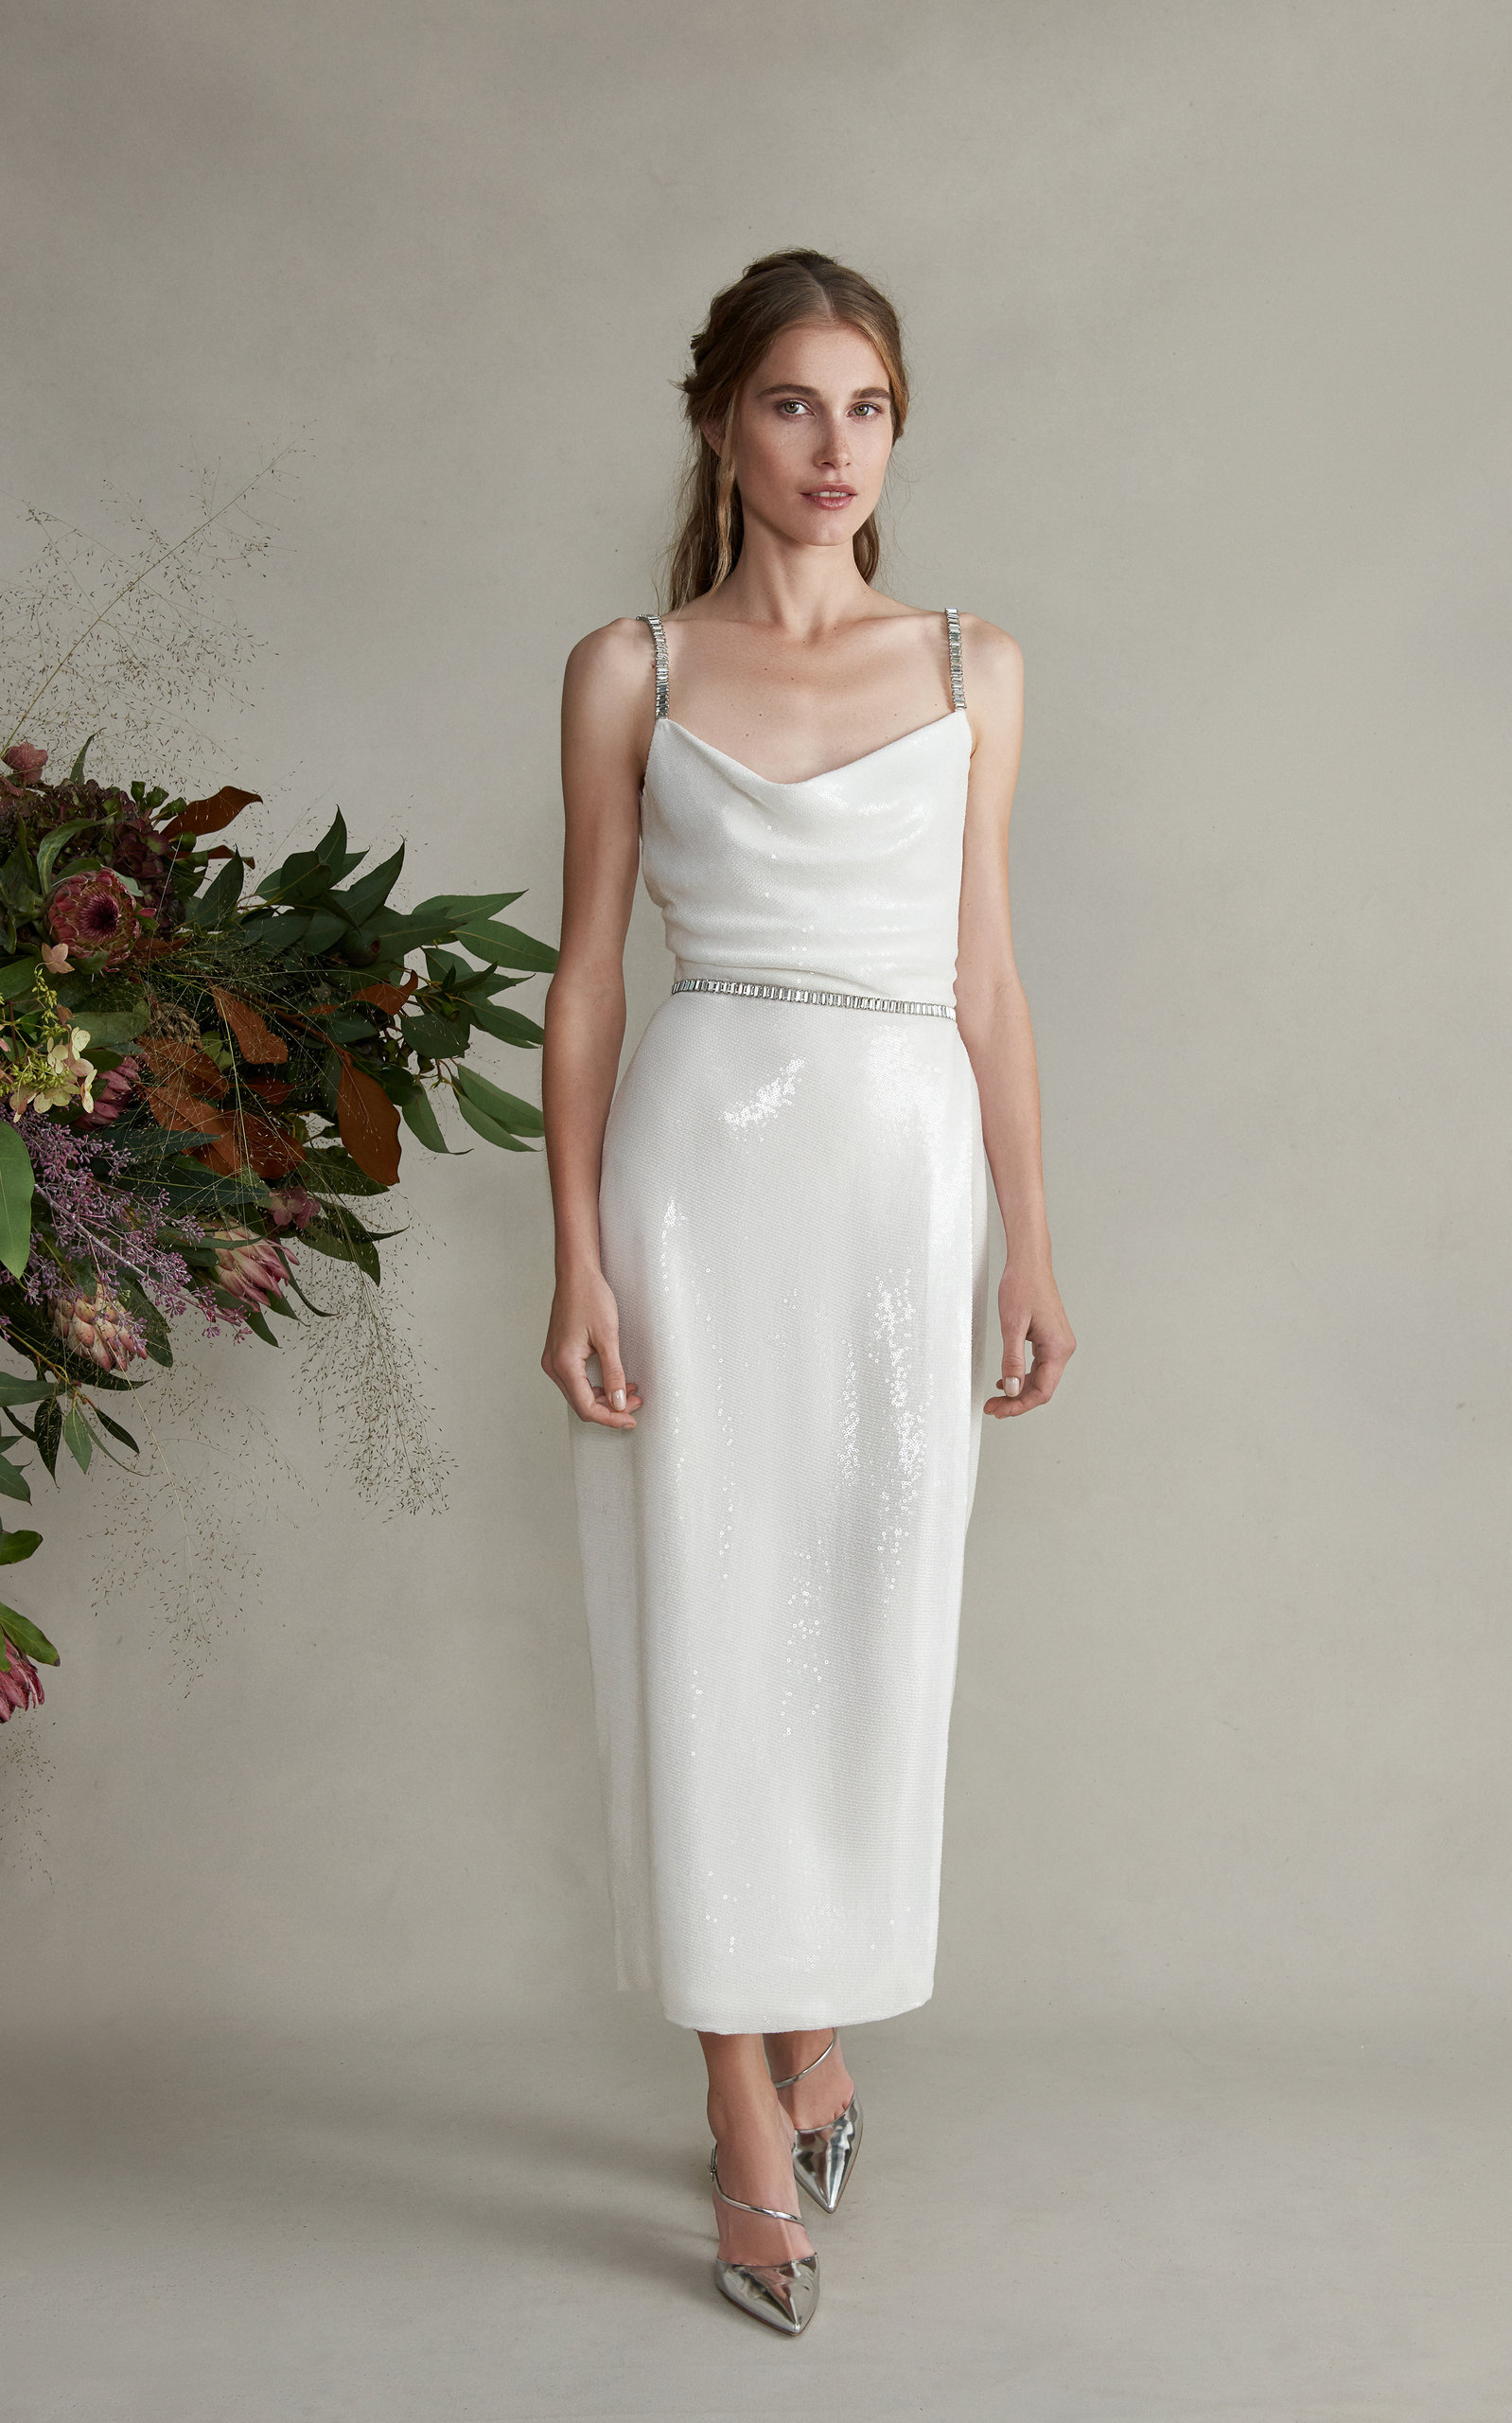 MARKARIAN Venus Fitted Jeweled Cami Tea Length Dress With Draped Neck in White